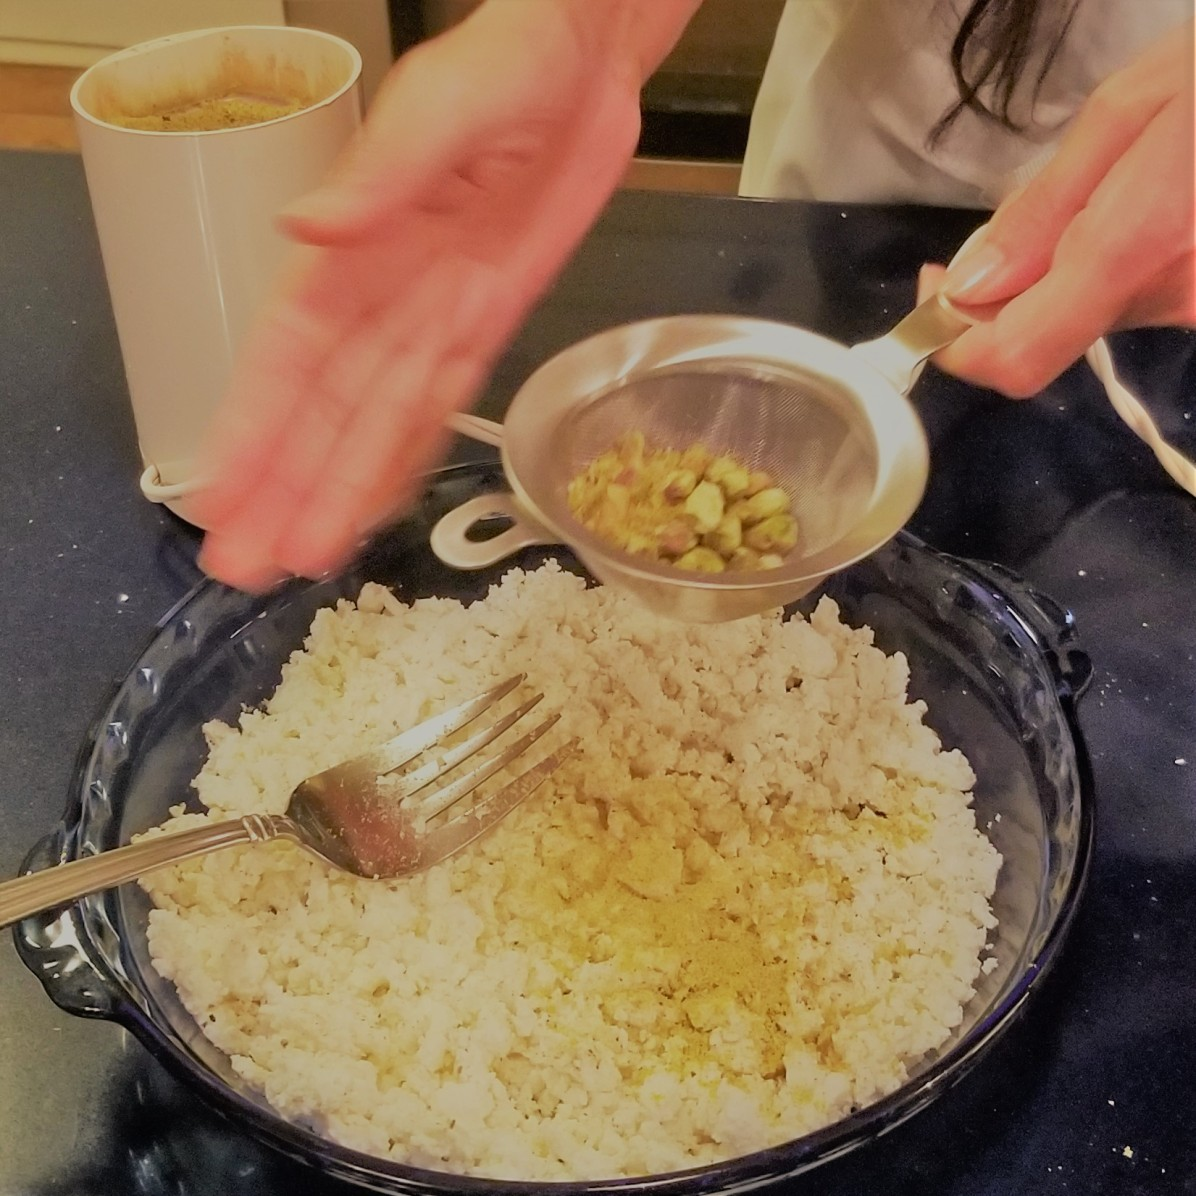 G. sifting in pistachi powder